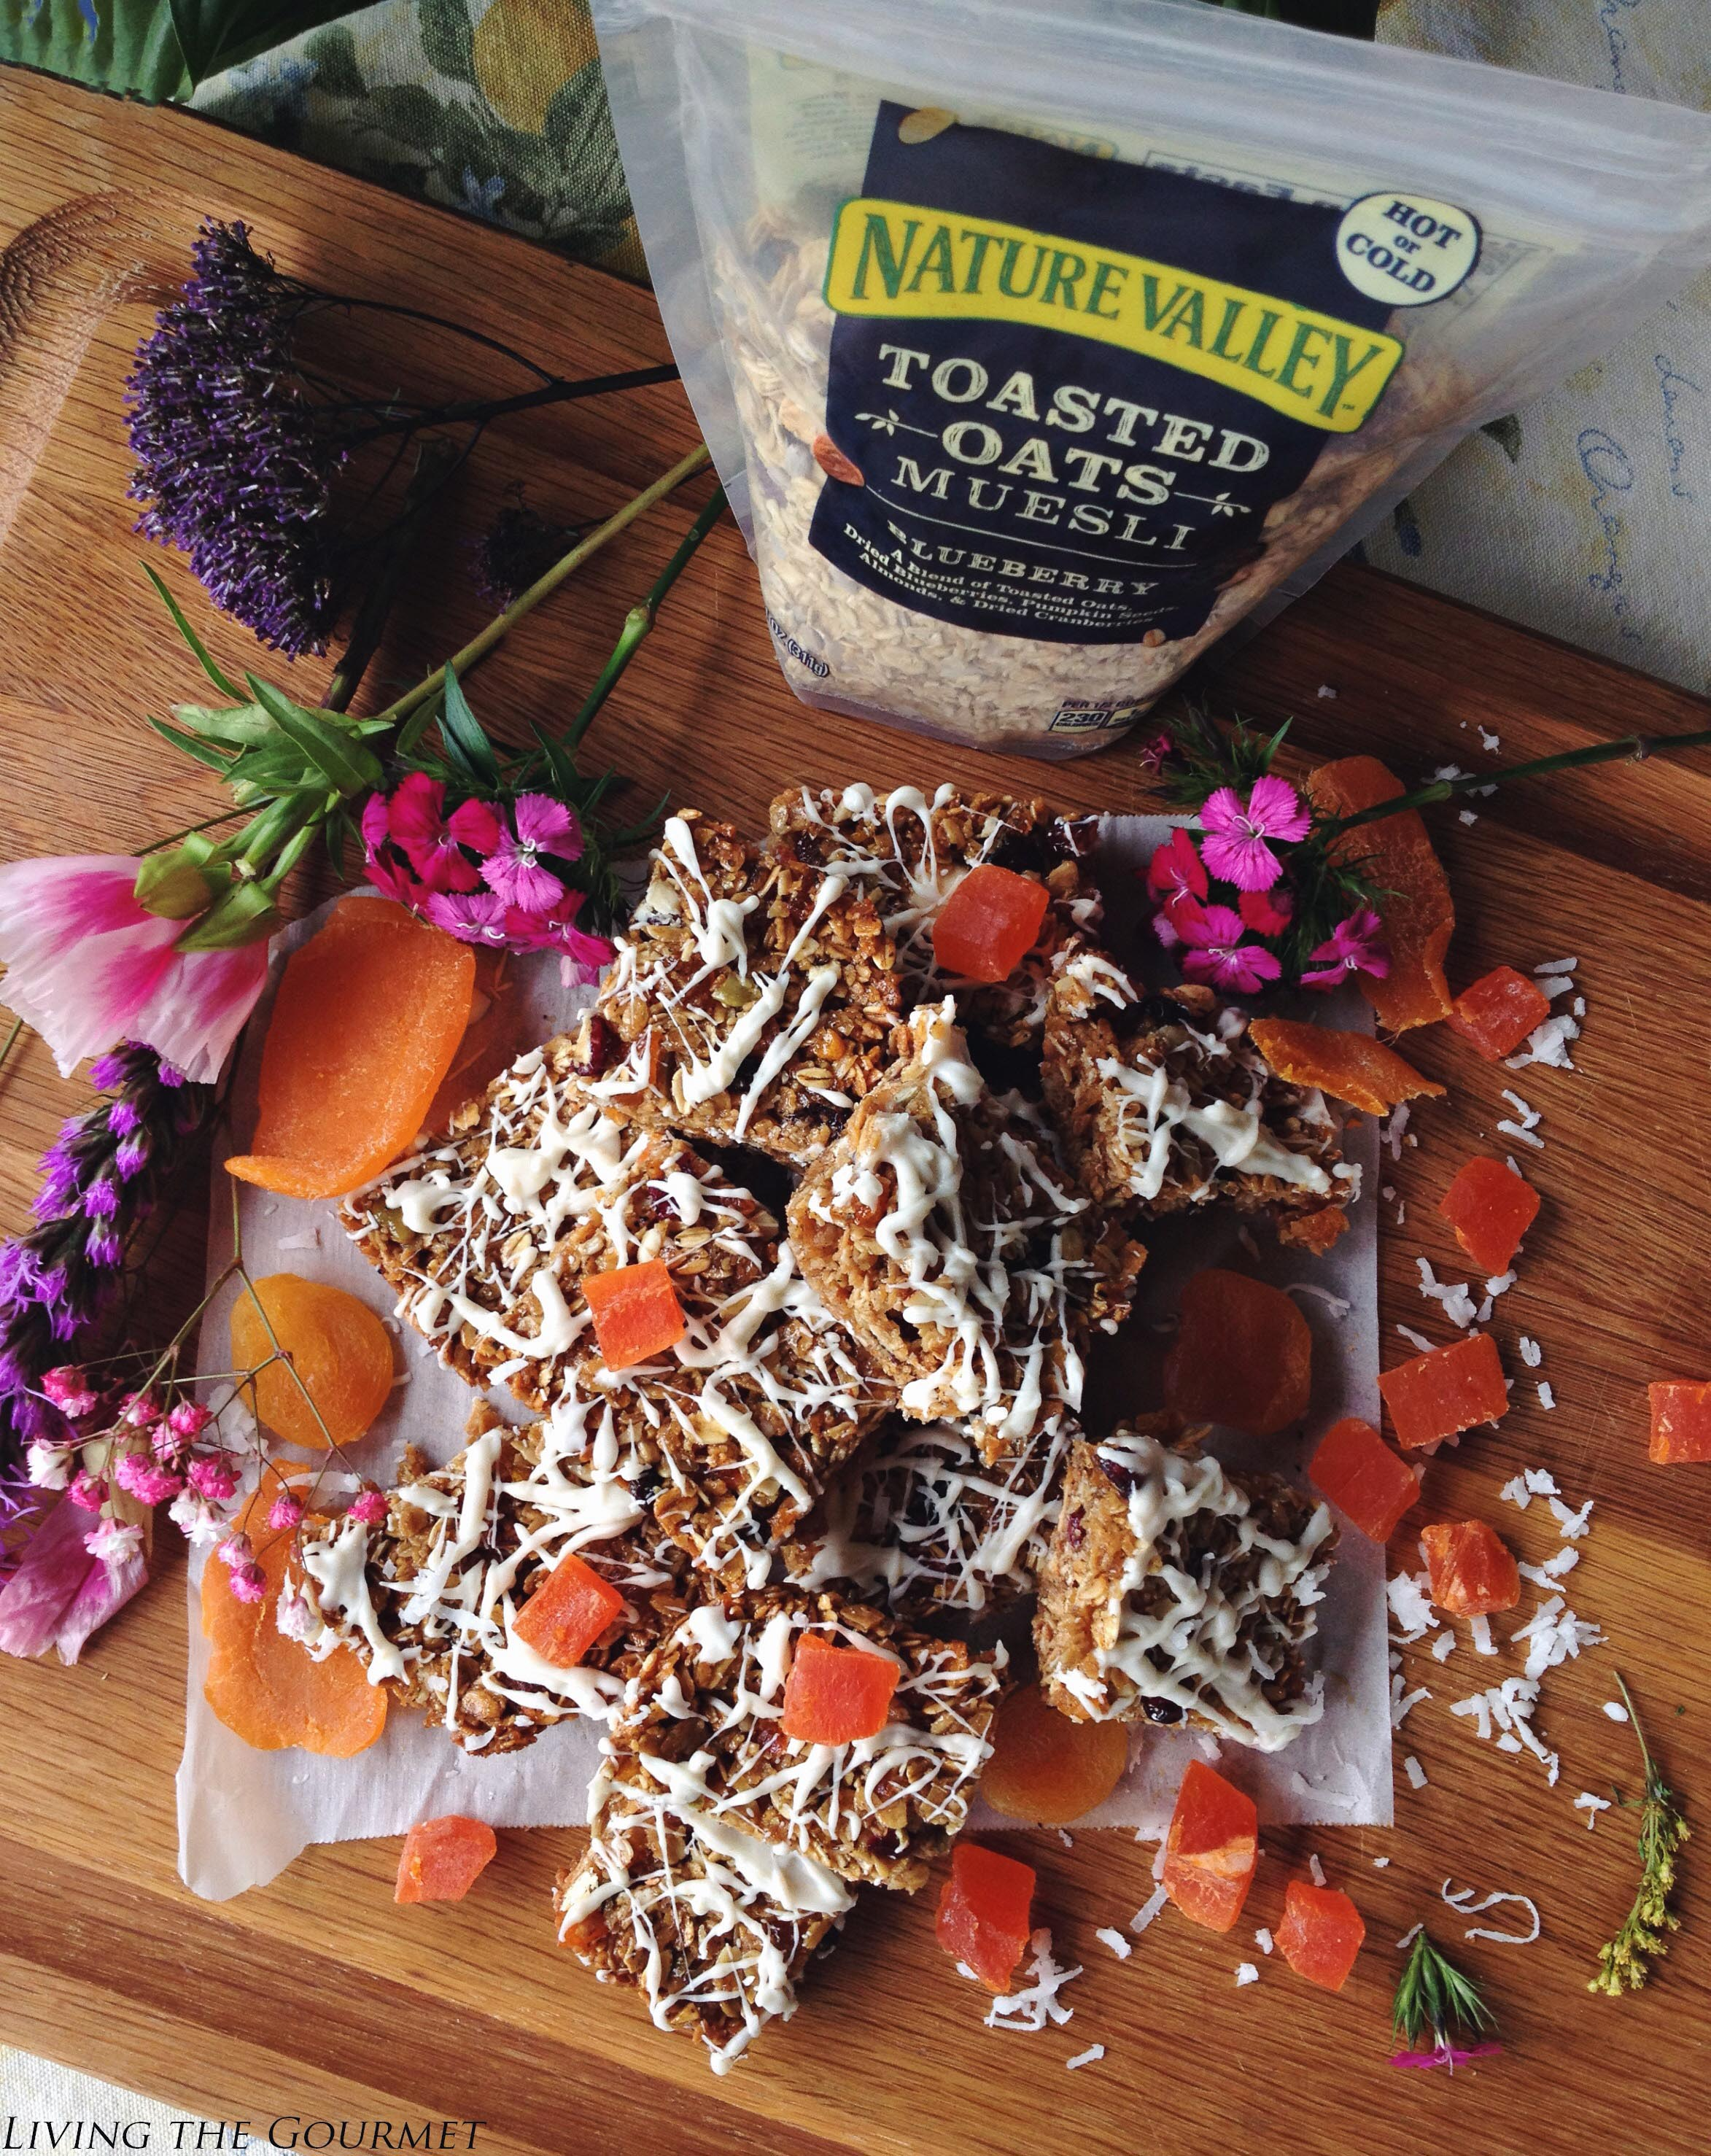 Living the Gourmet: Muesli Granola Bars #mueslichallenge #muesli #mueslirecipes #spith f2 preset